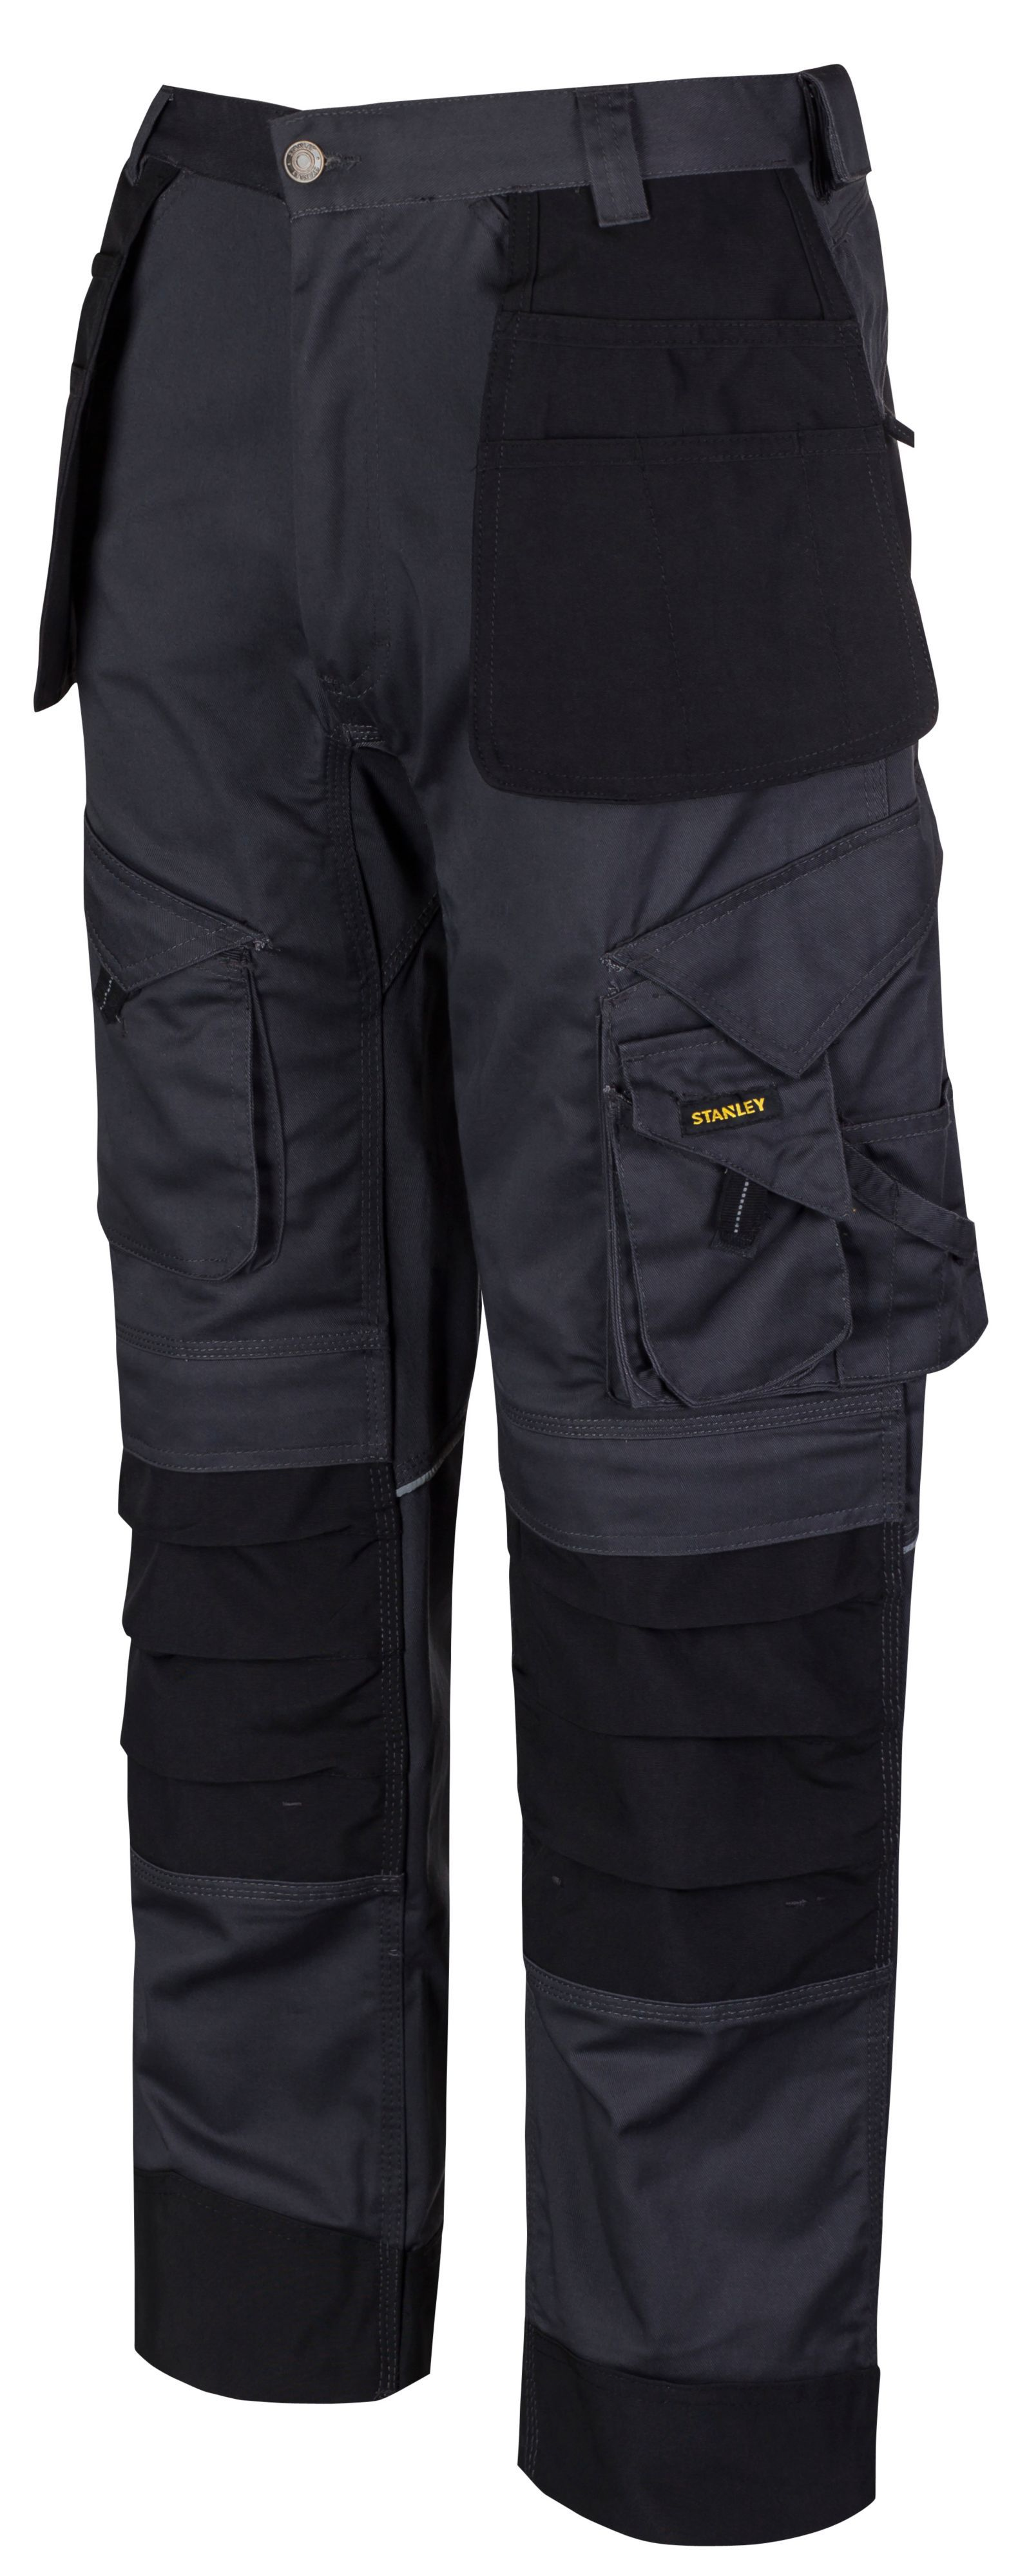 Stanley Colorado Grey Work Trousers W34 L31 Make Your Own Beautiful  HD Wallpapers, Images Over 1000+ [ralydesign.ml]